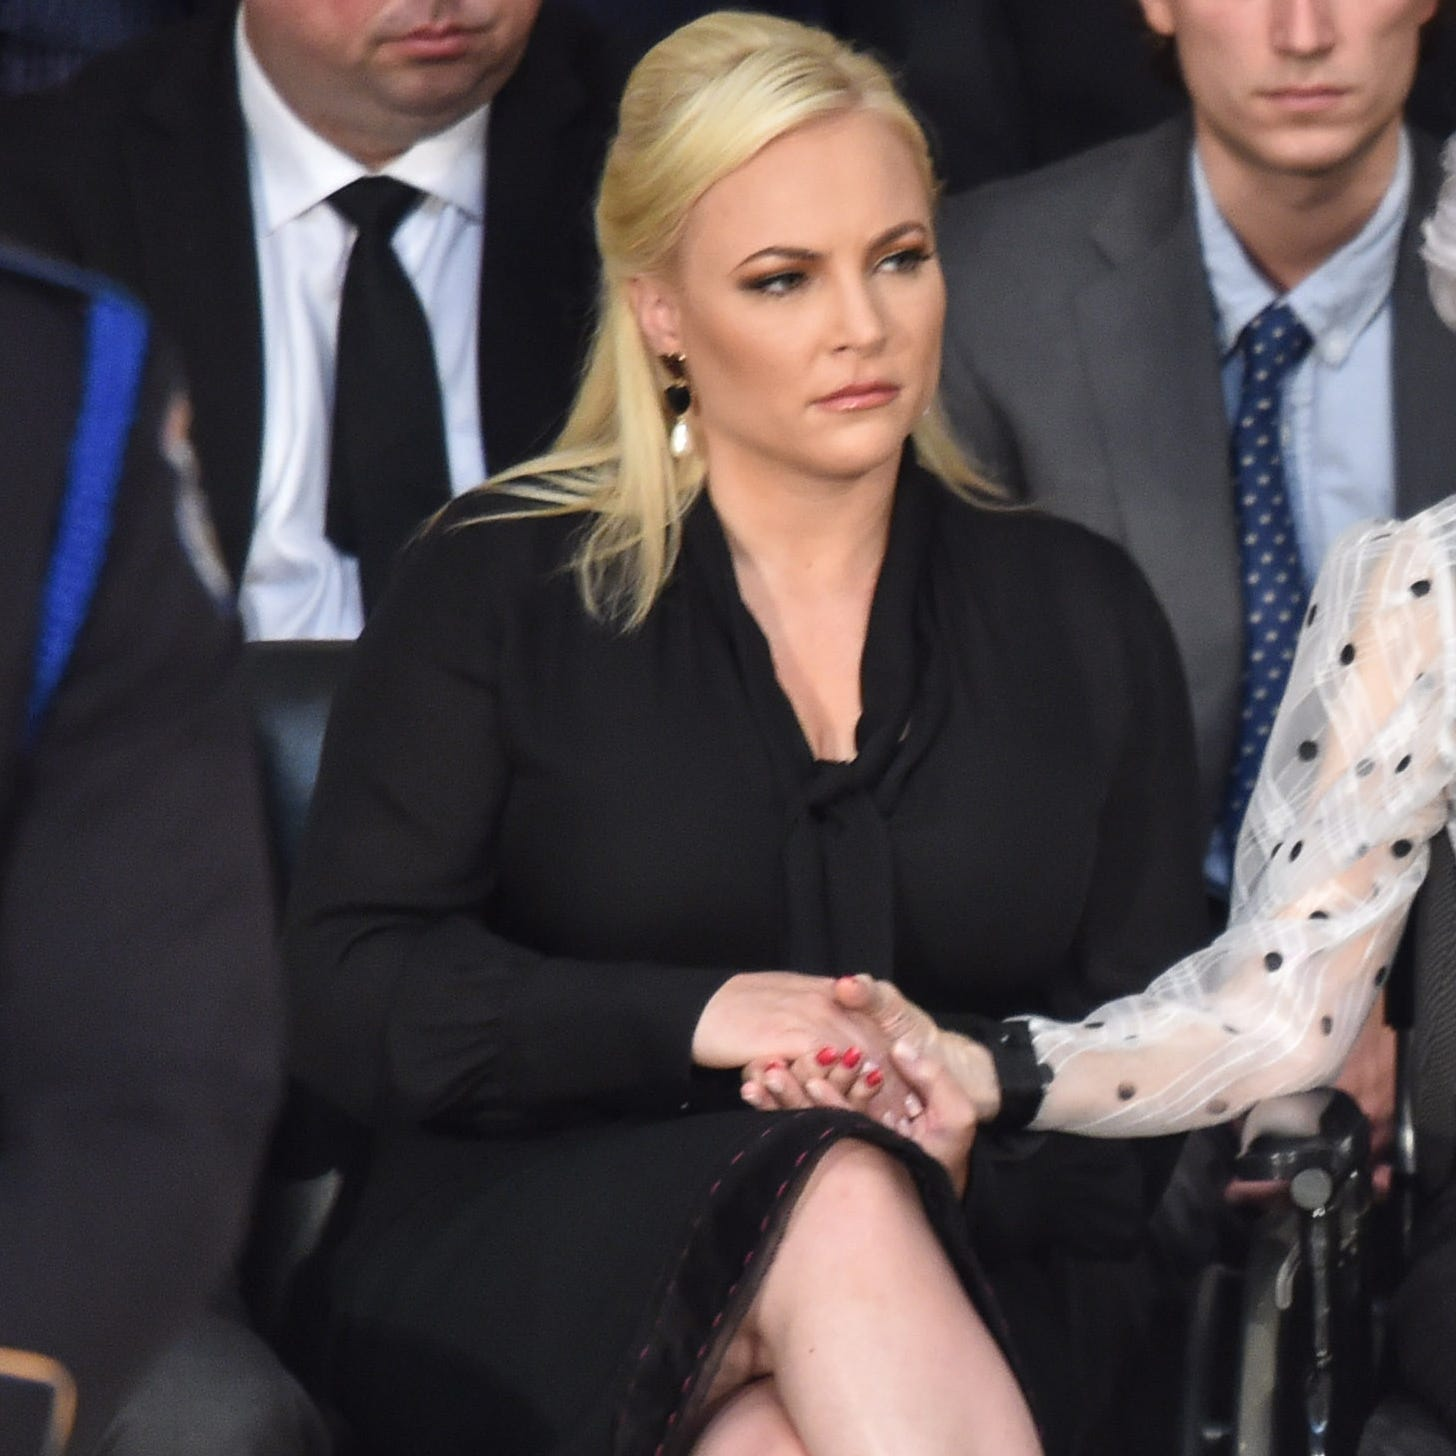 Meghan McCain reacts to another Kyrsten Sinema comment about Arizona